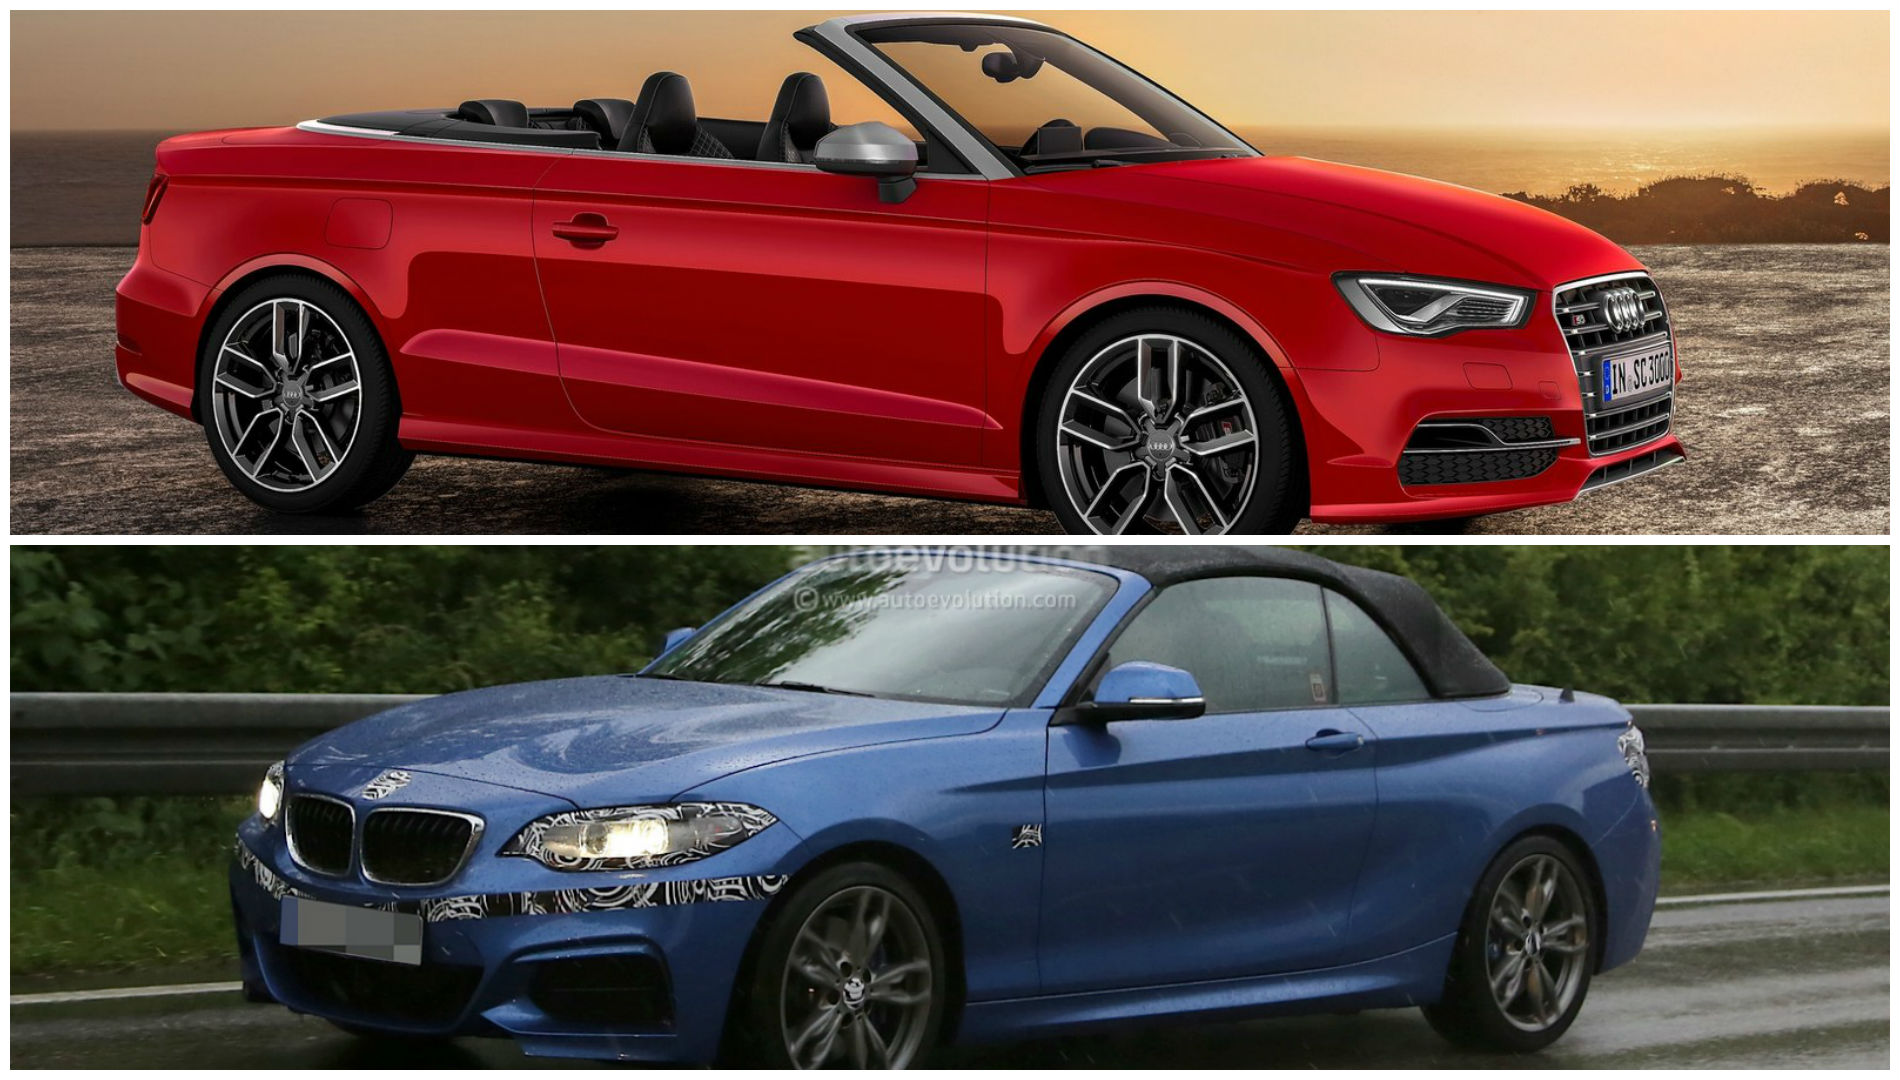 bmw m235i vs audi s3 battle of the compact performance. Black Bedroom Furniture Sets. Home Design Ideas